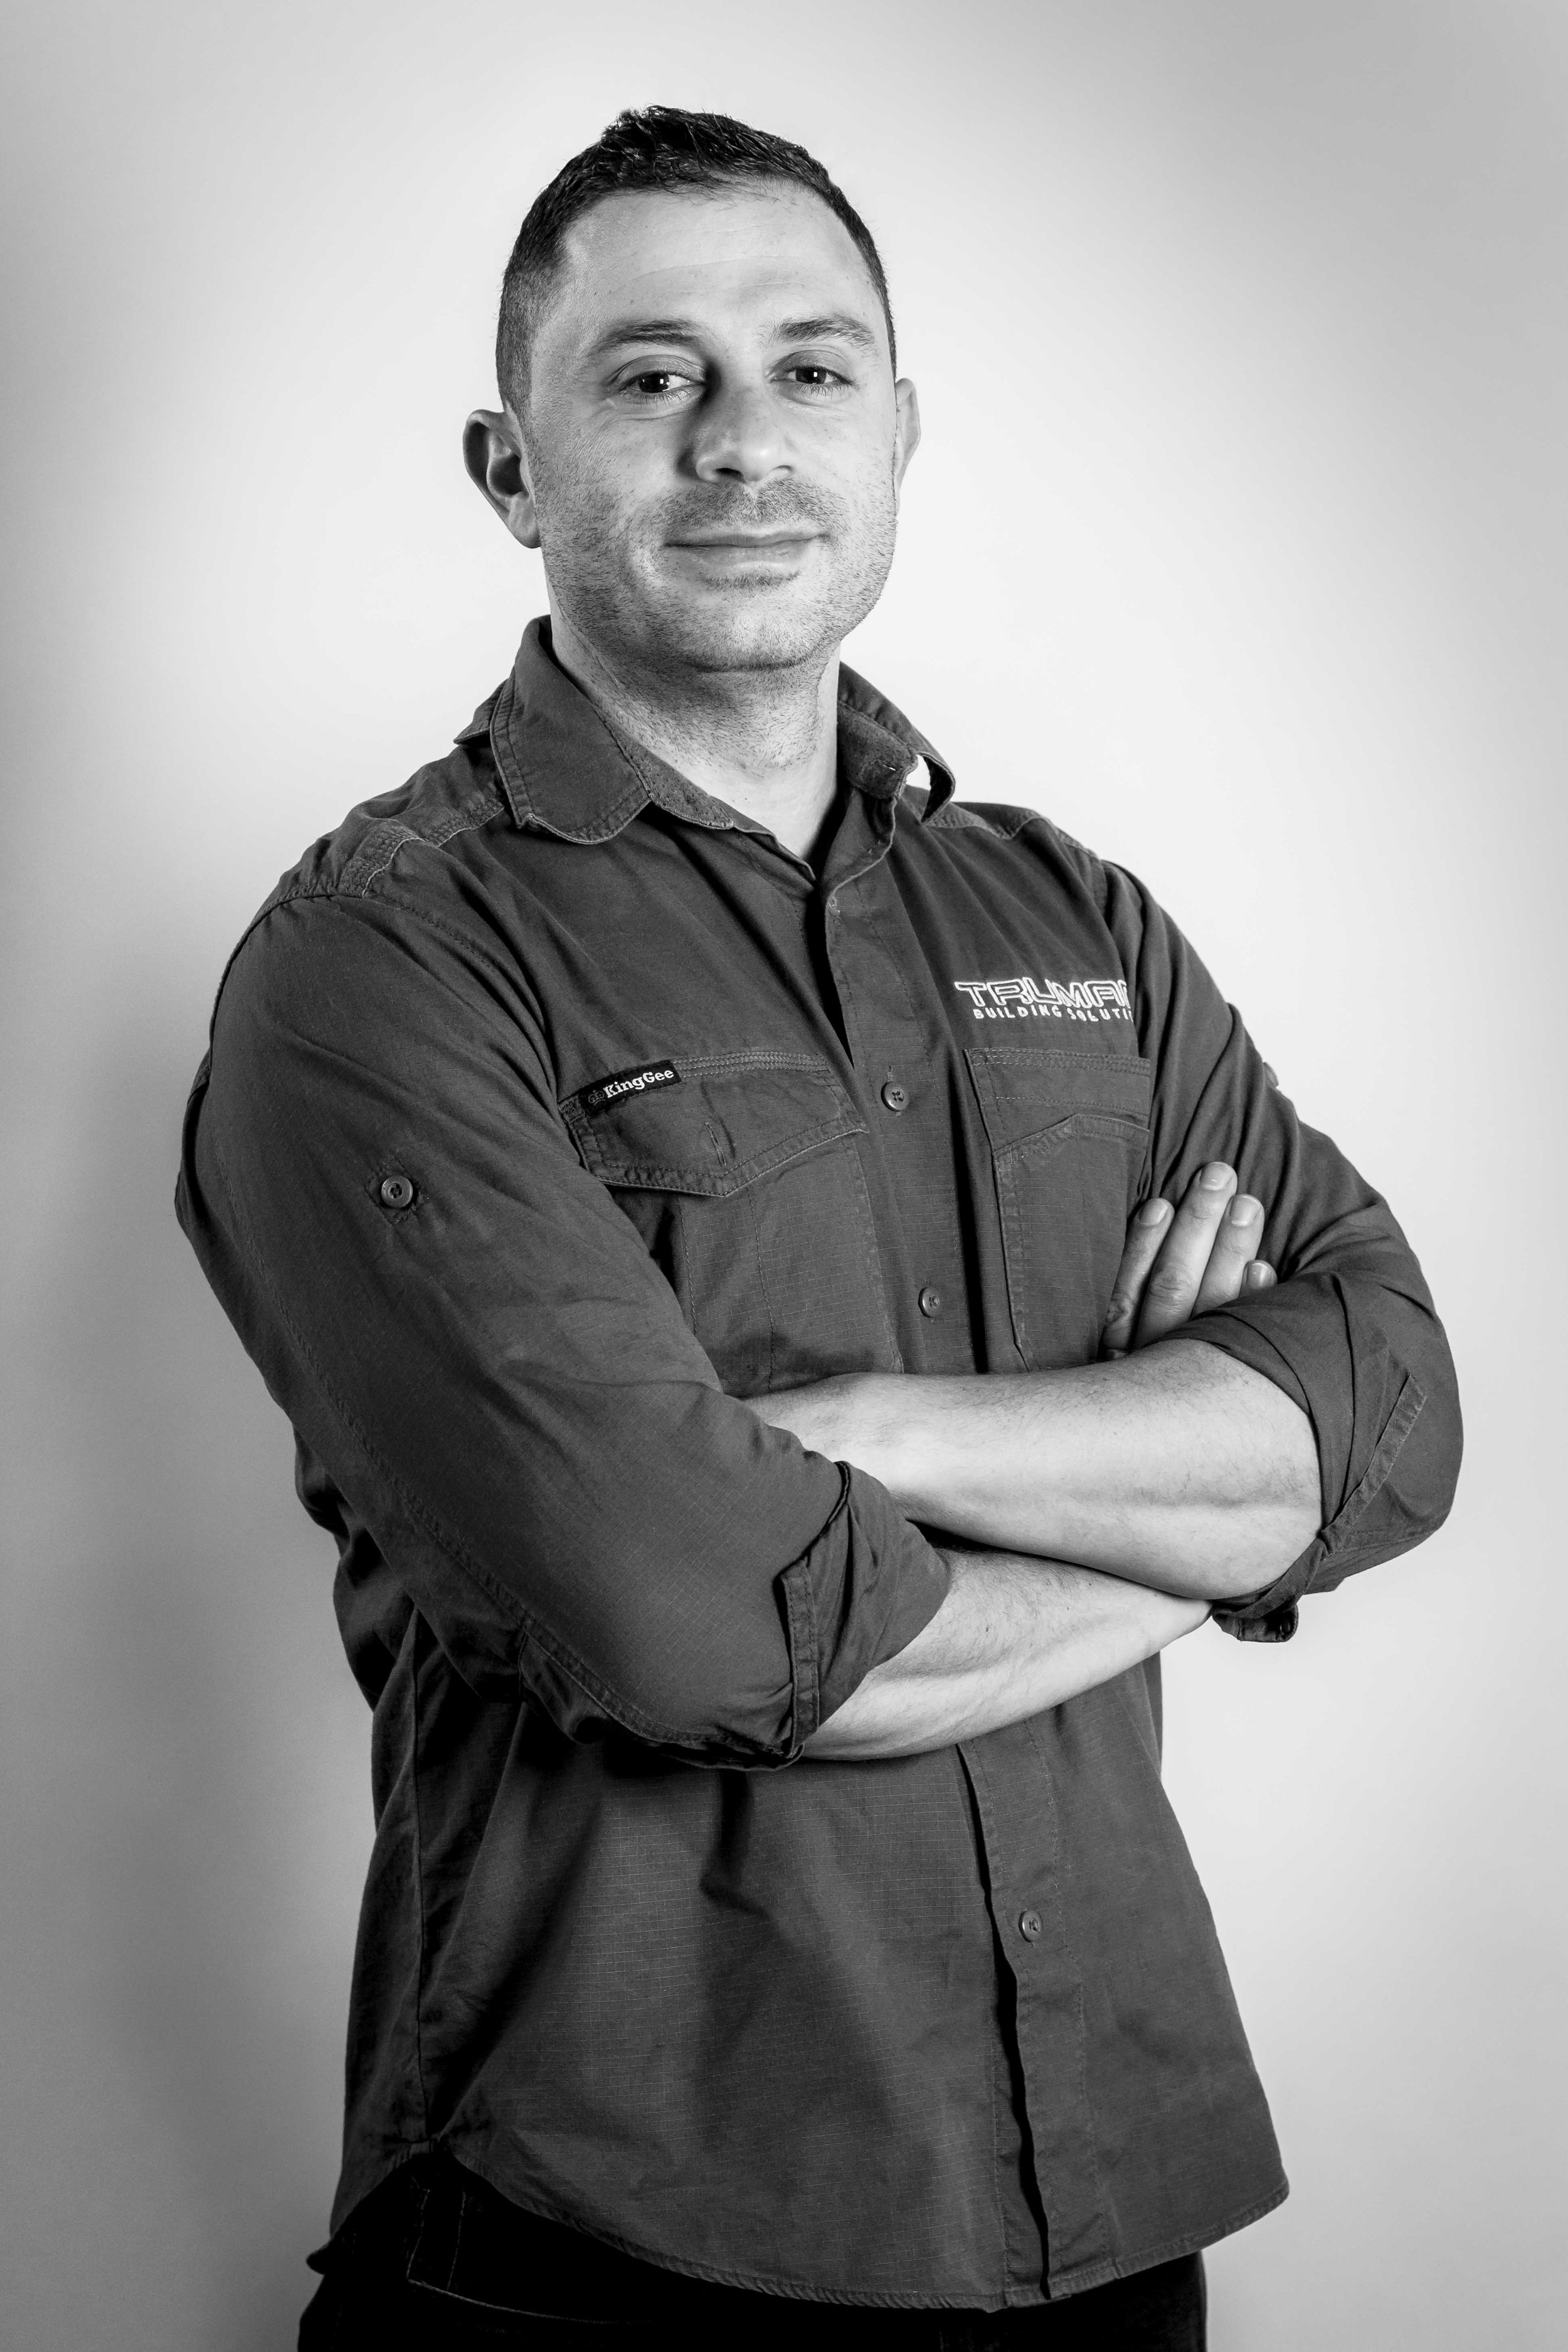 ELIAS METRY    Architect/Project Manager   Elias joined Truman Building in 2017 with his Masters of Architecture and certification in Construction Management. He oversees project design and construction execution, keeping projects on time, and on budget.